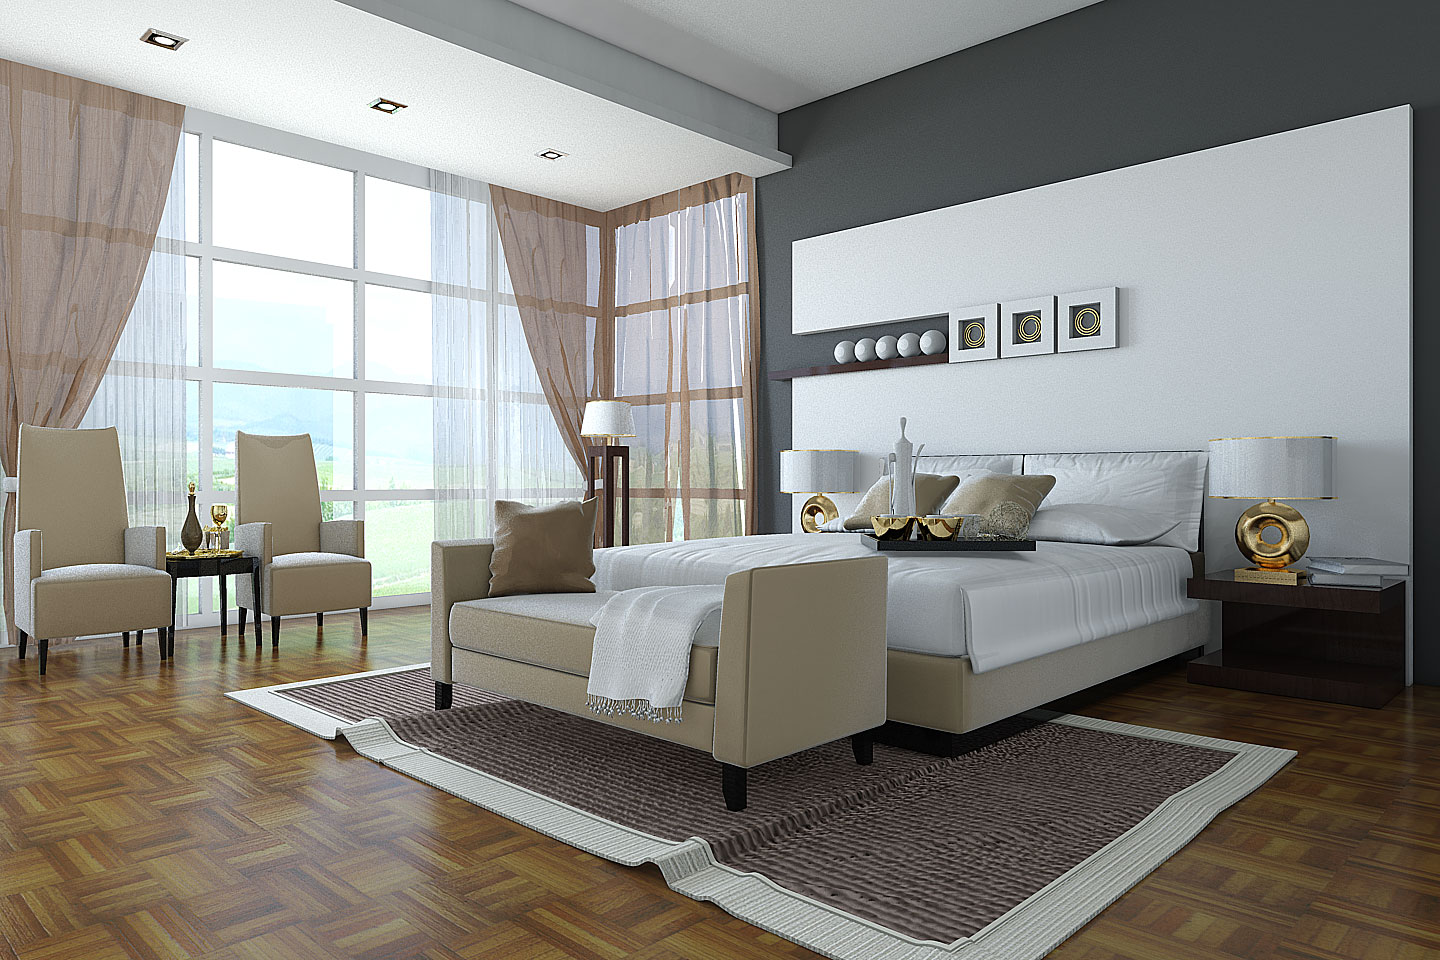 classic bedroom design - Beautiful Bedroom Decor